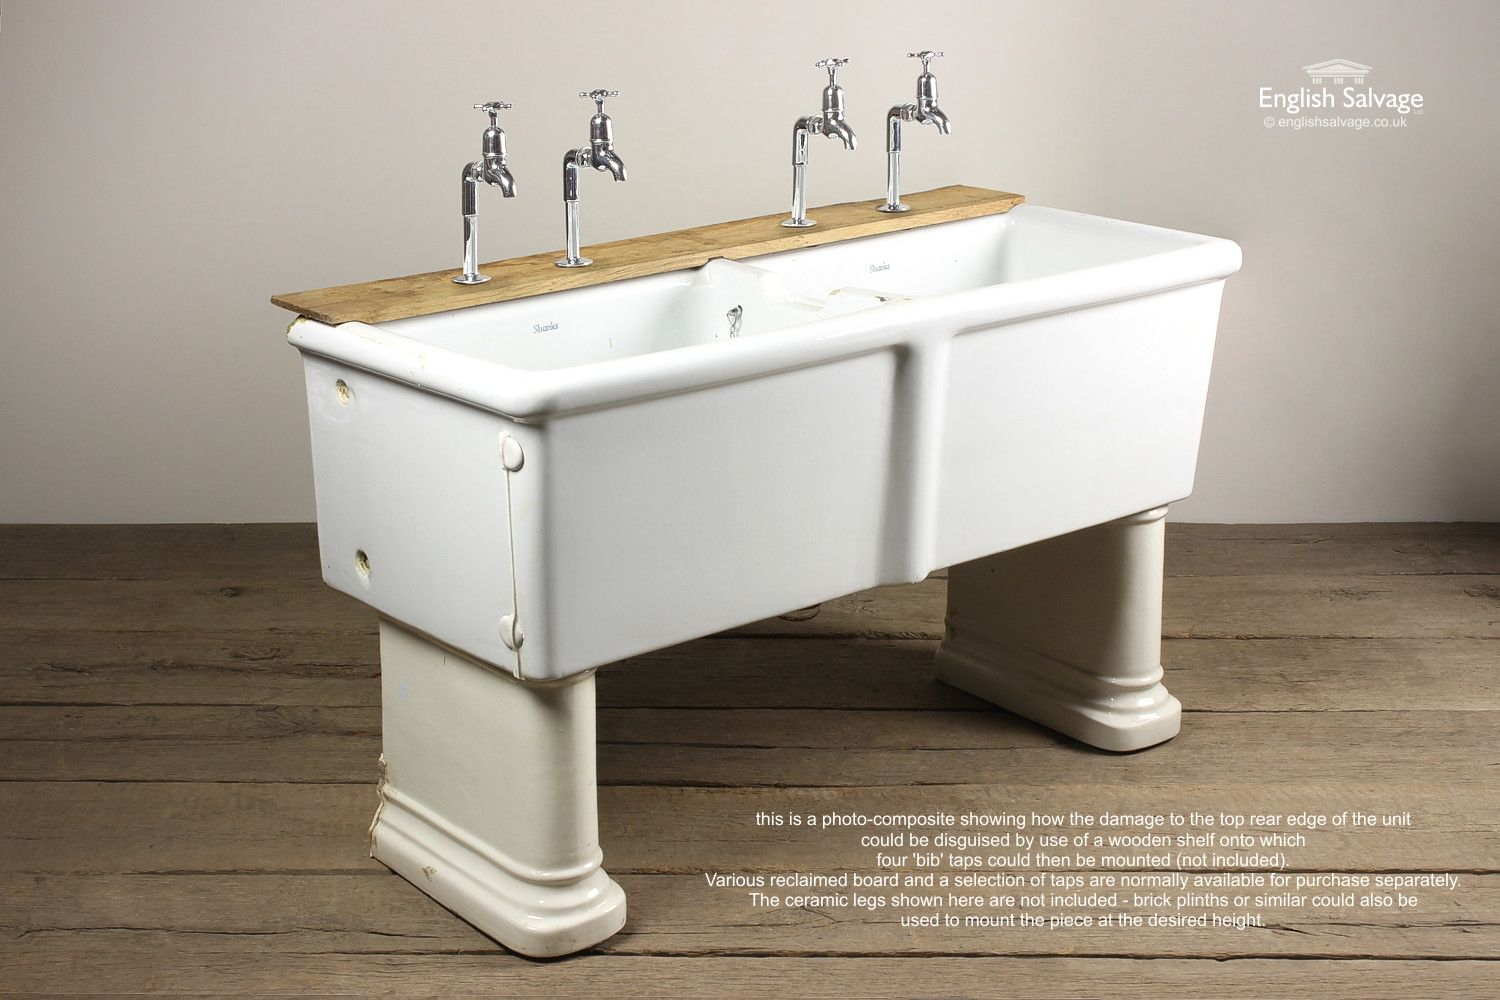 Reclaimed Shanks Double Belfast Sink Bathrooms